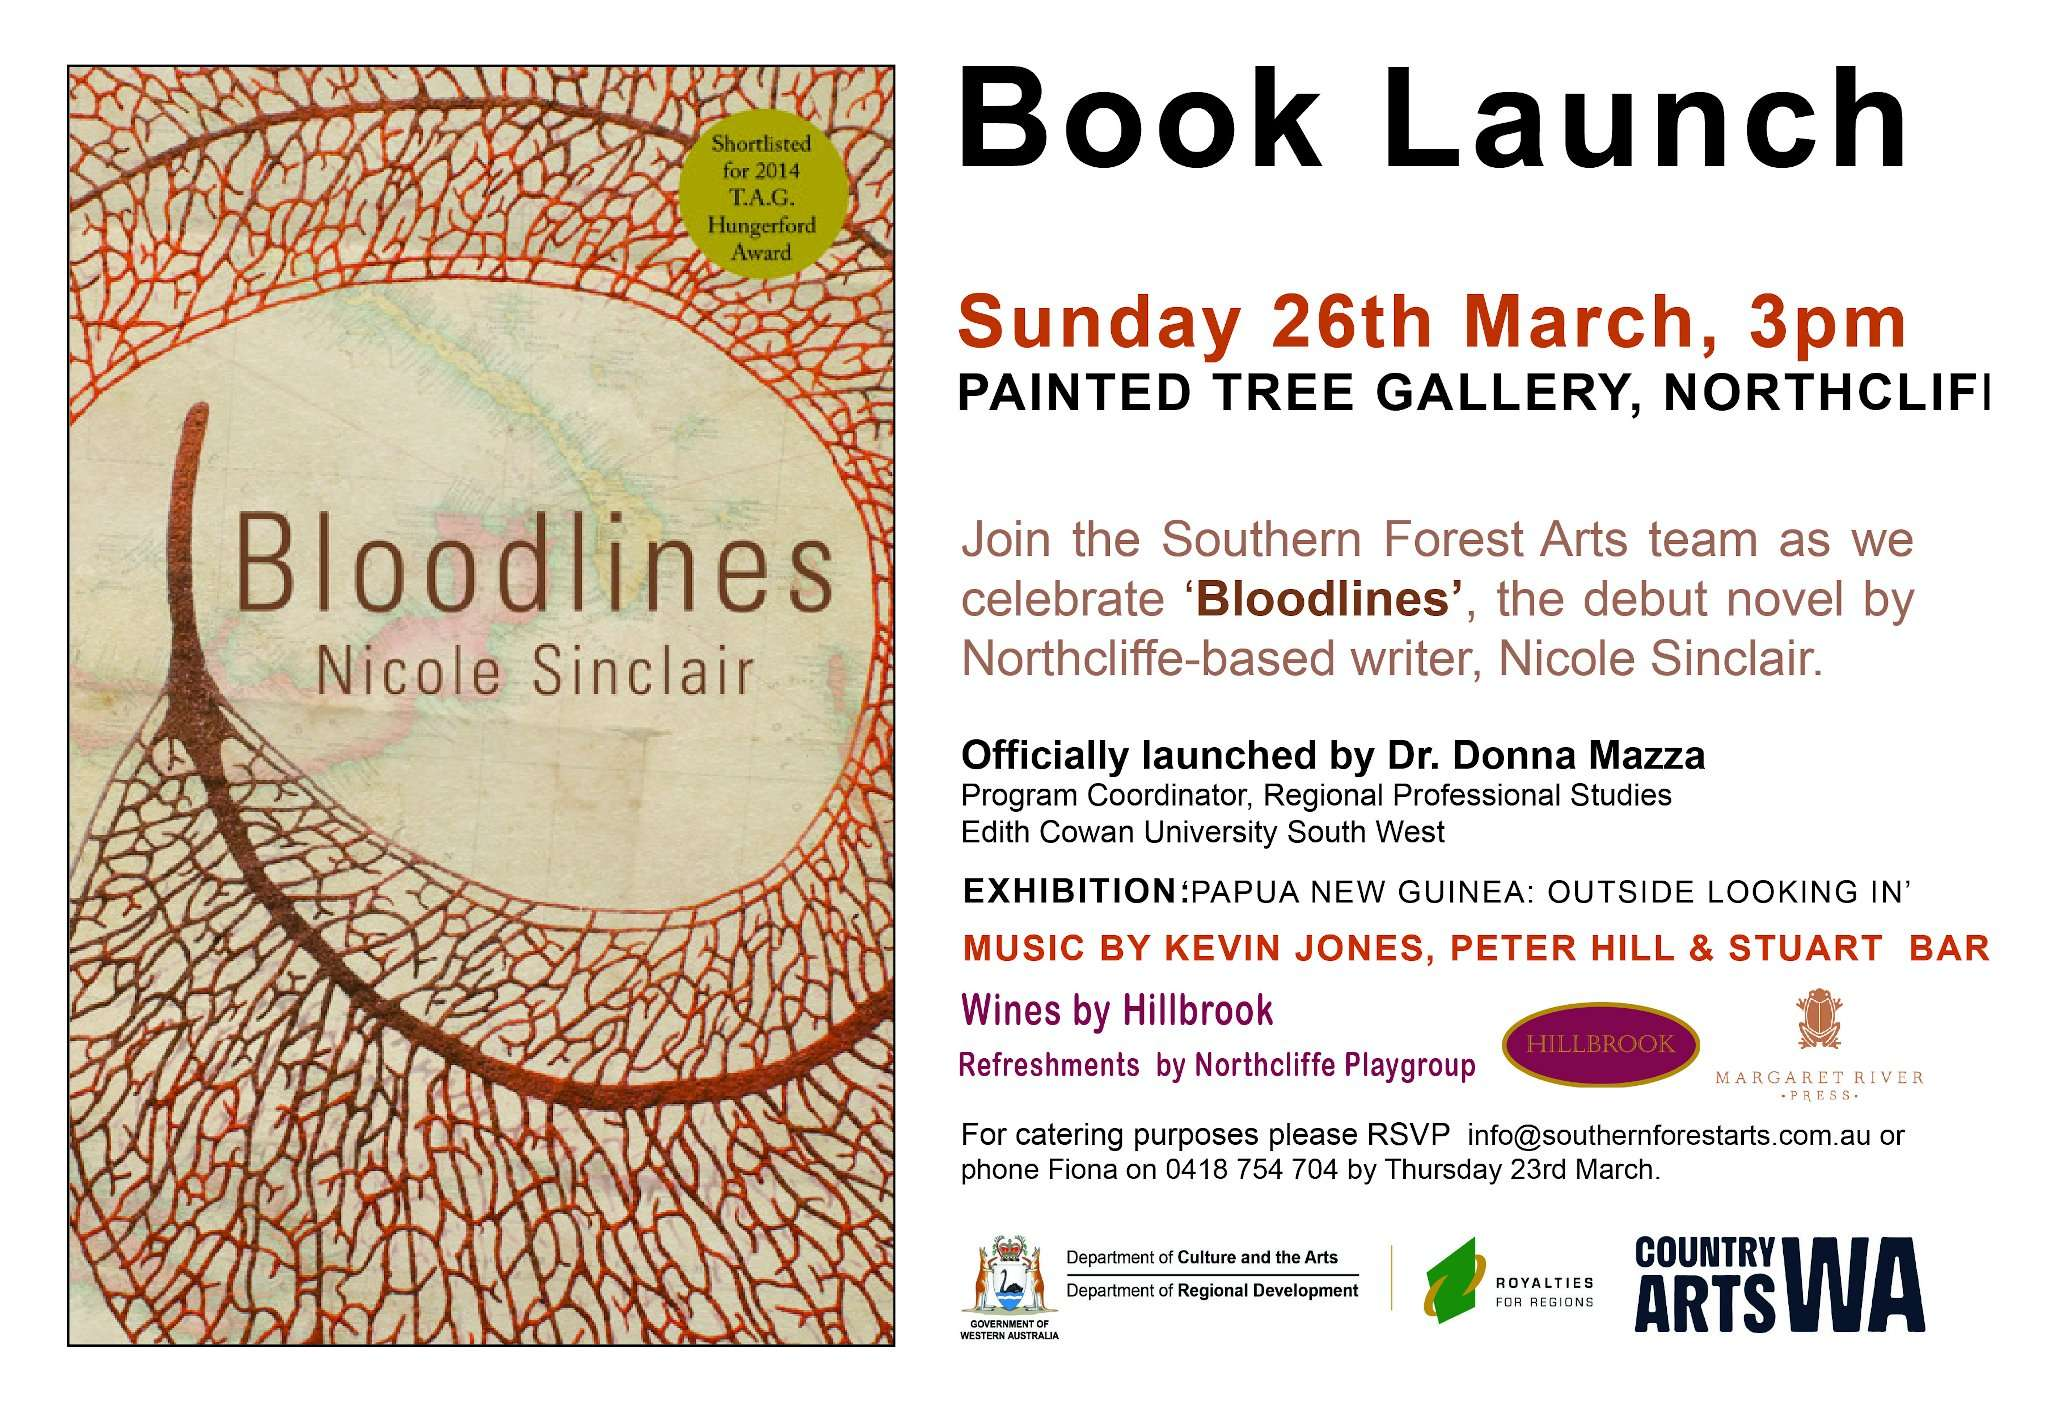 Bloodlines Book Launch at the painted Tree Gallery (Northcliffe) by Nic Sinclair 2015 presented by Southern Forest Arts